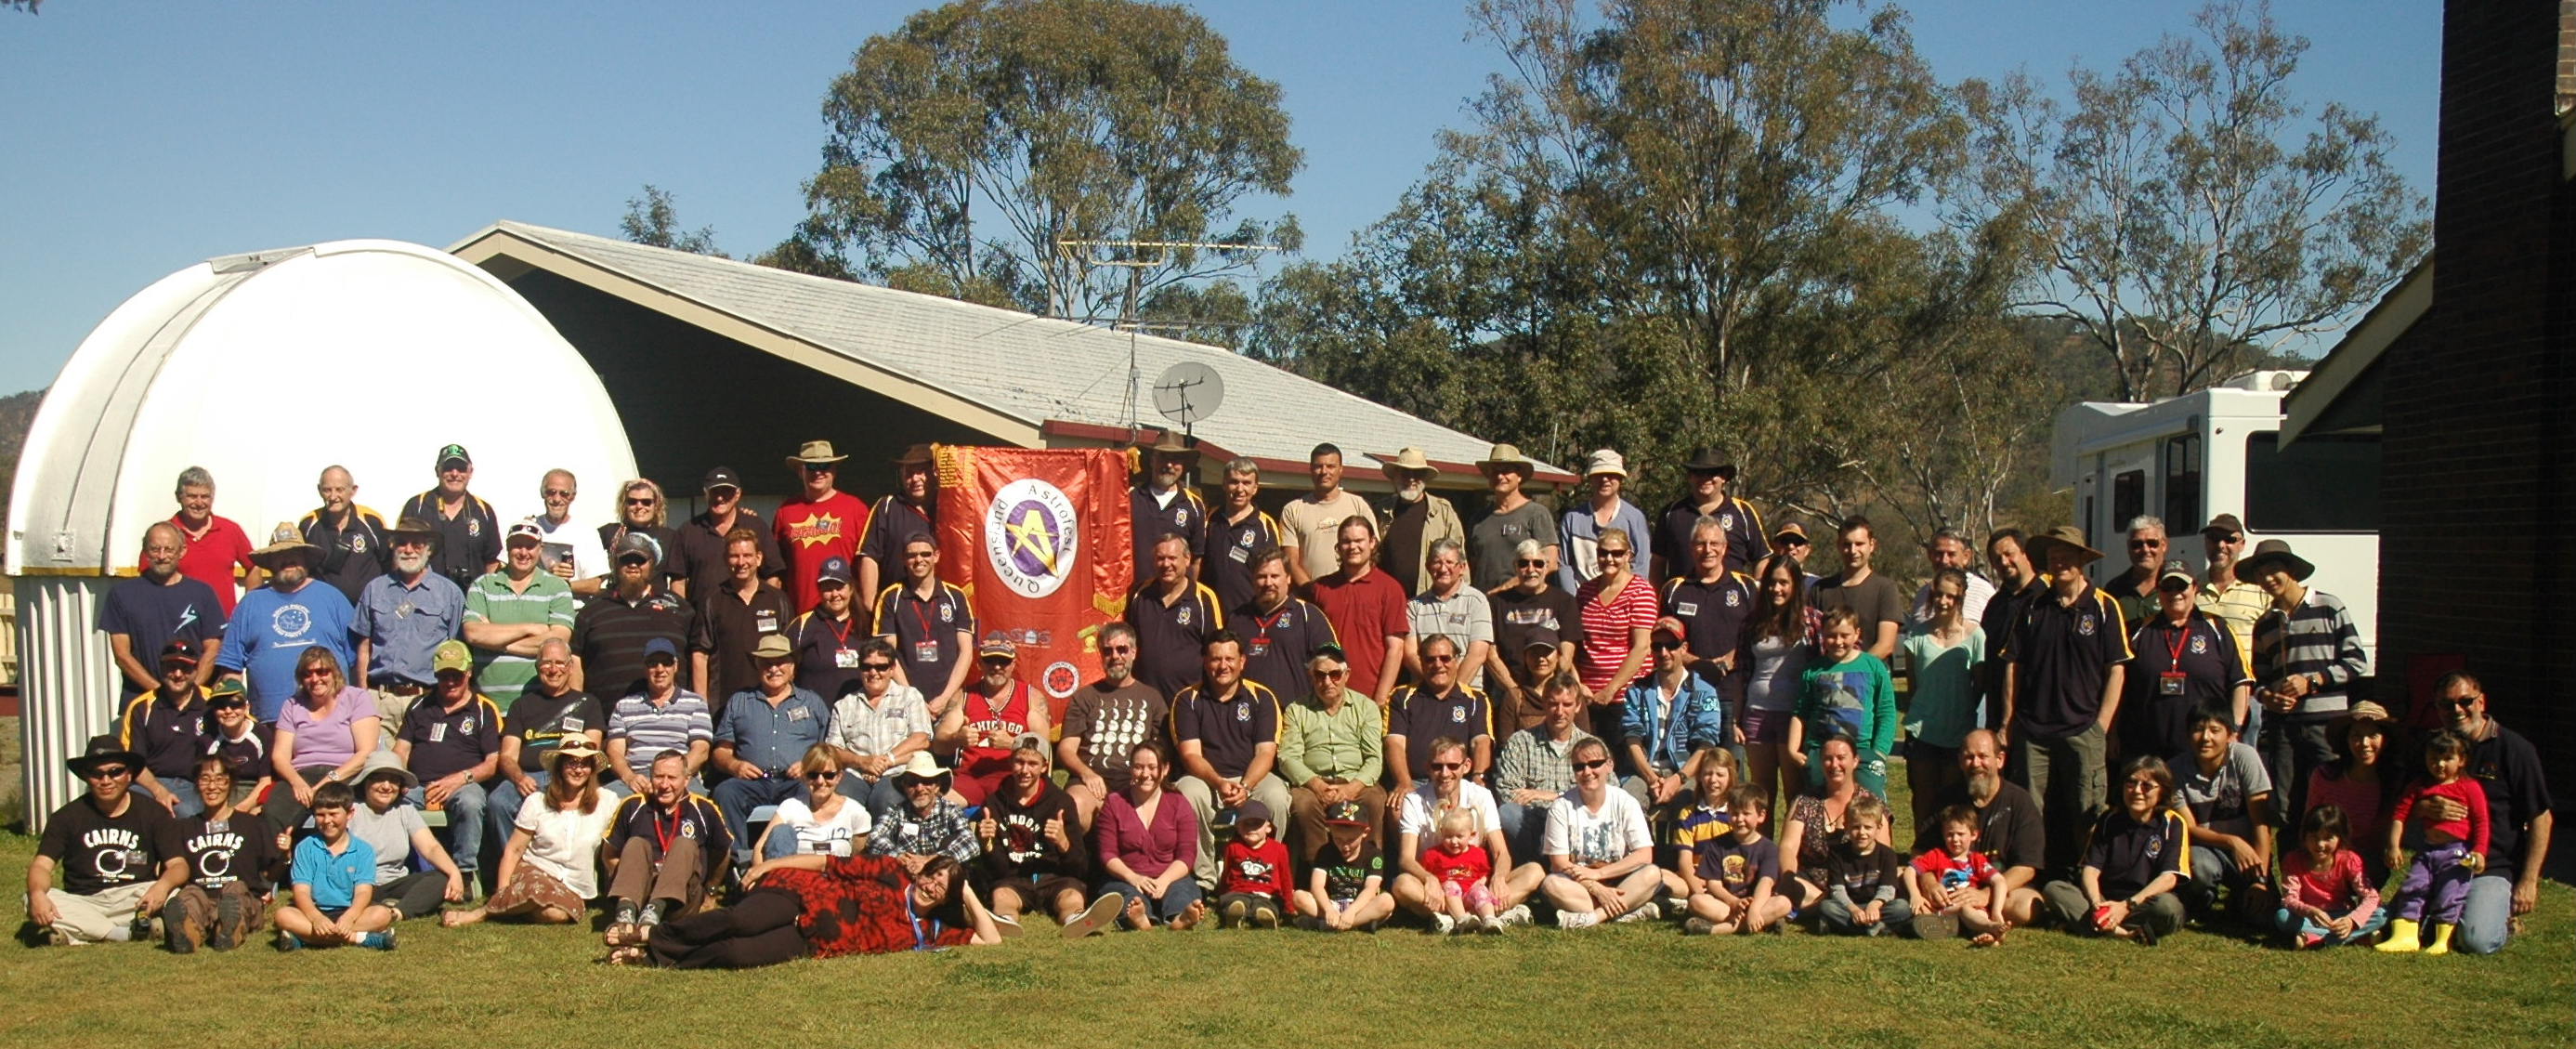 Combined Societies of Sth East Qld